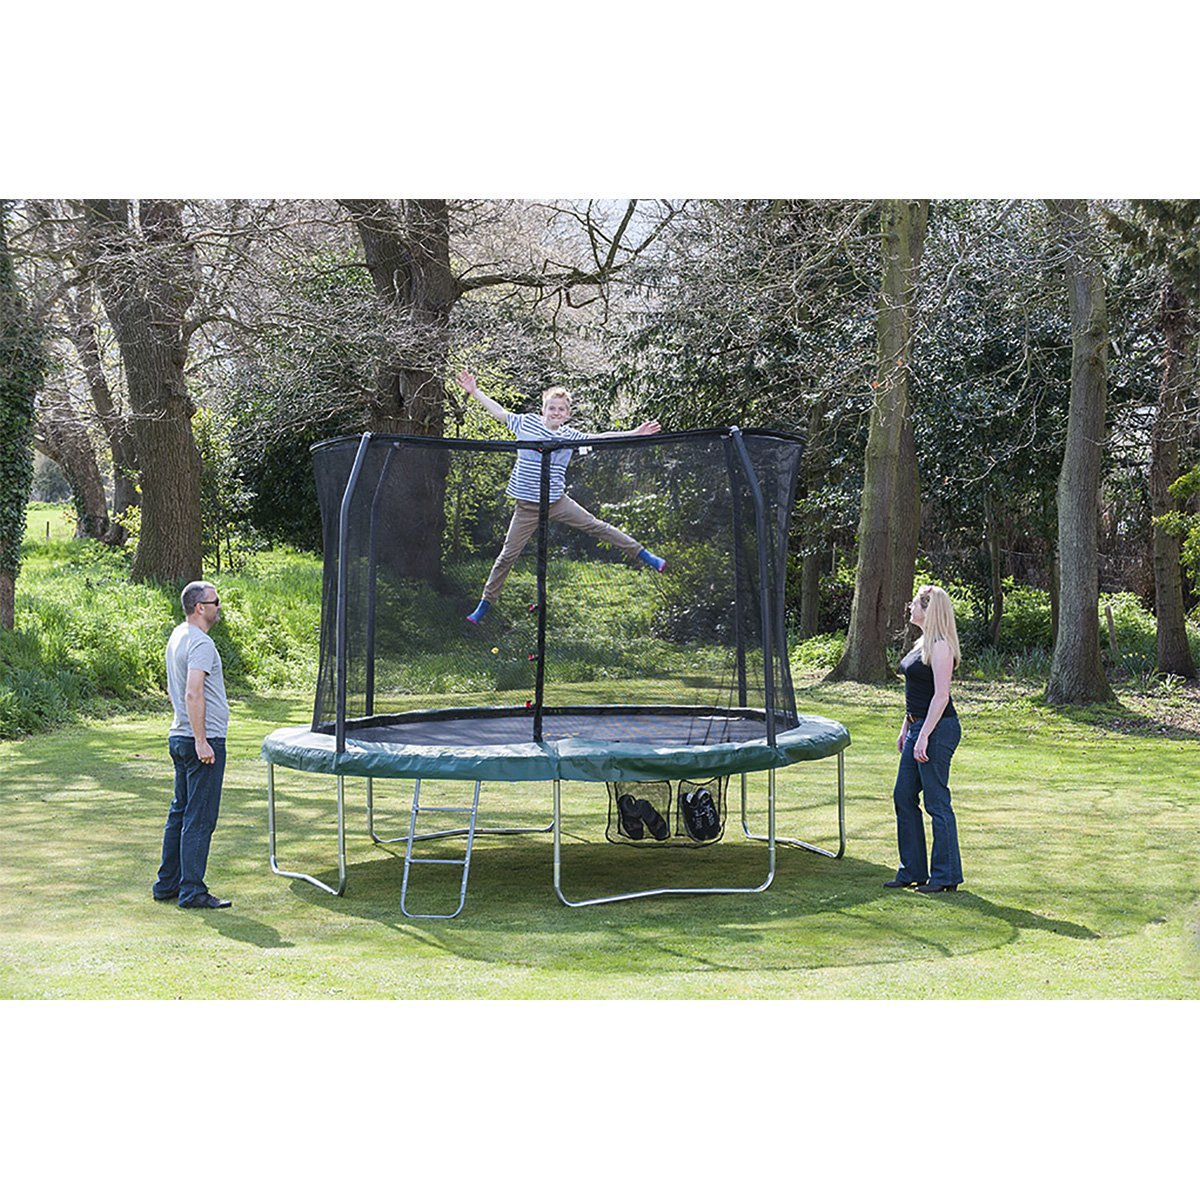 jumpking classic trampolin 366 cm mit netz und leiter. Black Bedroom Furniture Sets. Home Design Ideas